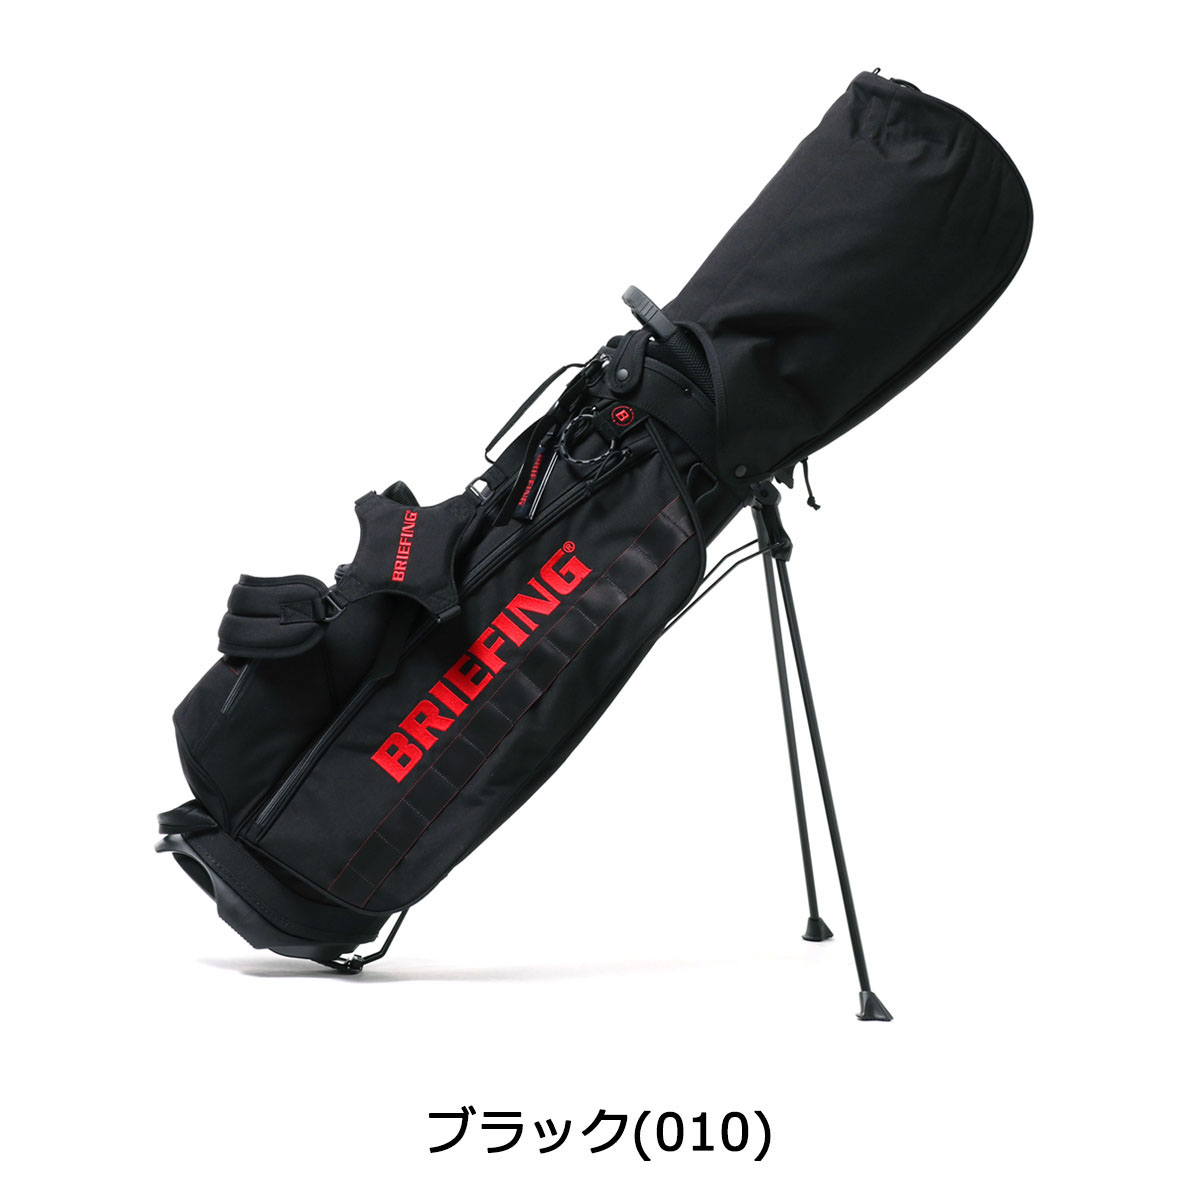 Briefing Golf Caddy Bag Stand Cr 4 01 Mens Shoulder Cover Women S Brg 183701